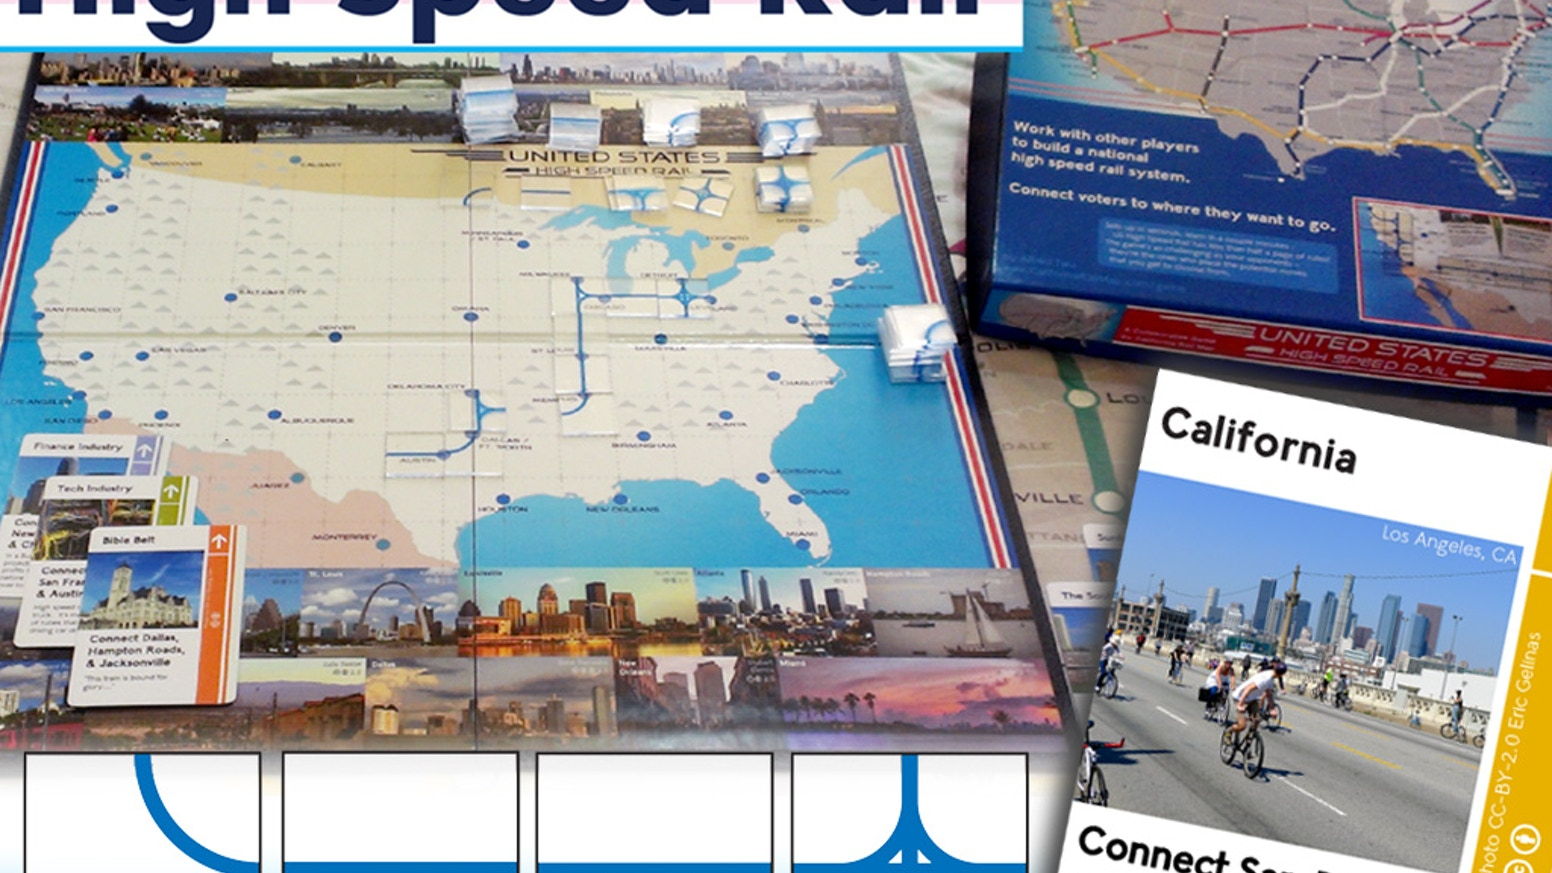 High Speed Rail Board Game by Alfred » Game Design Journal #1 - The ...